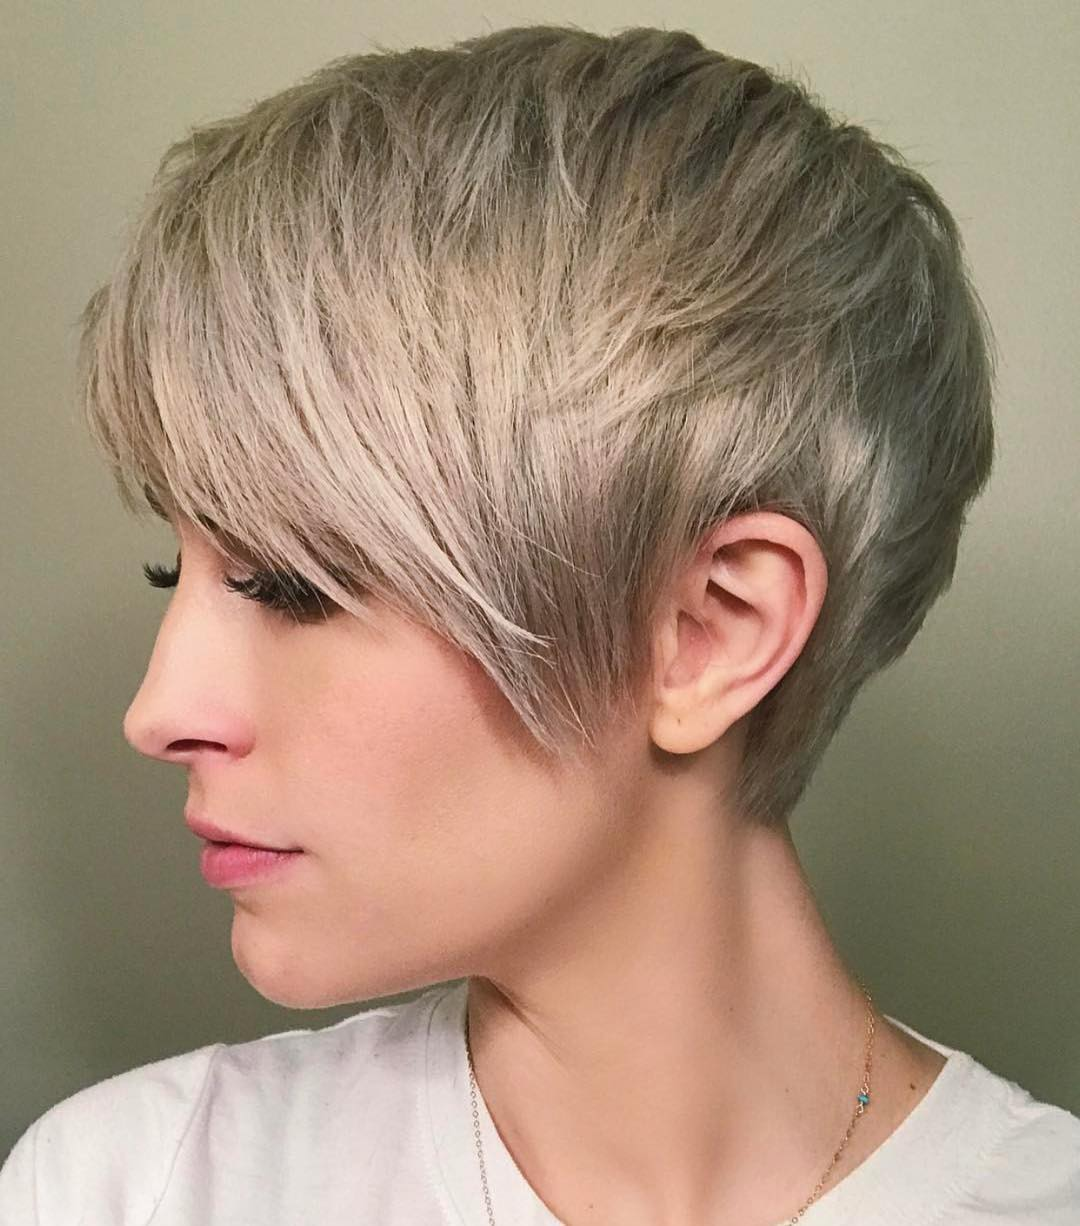 Short straight hairstyle - short hairstyles for women and girls